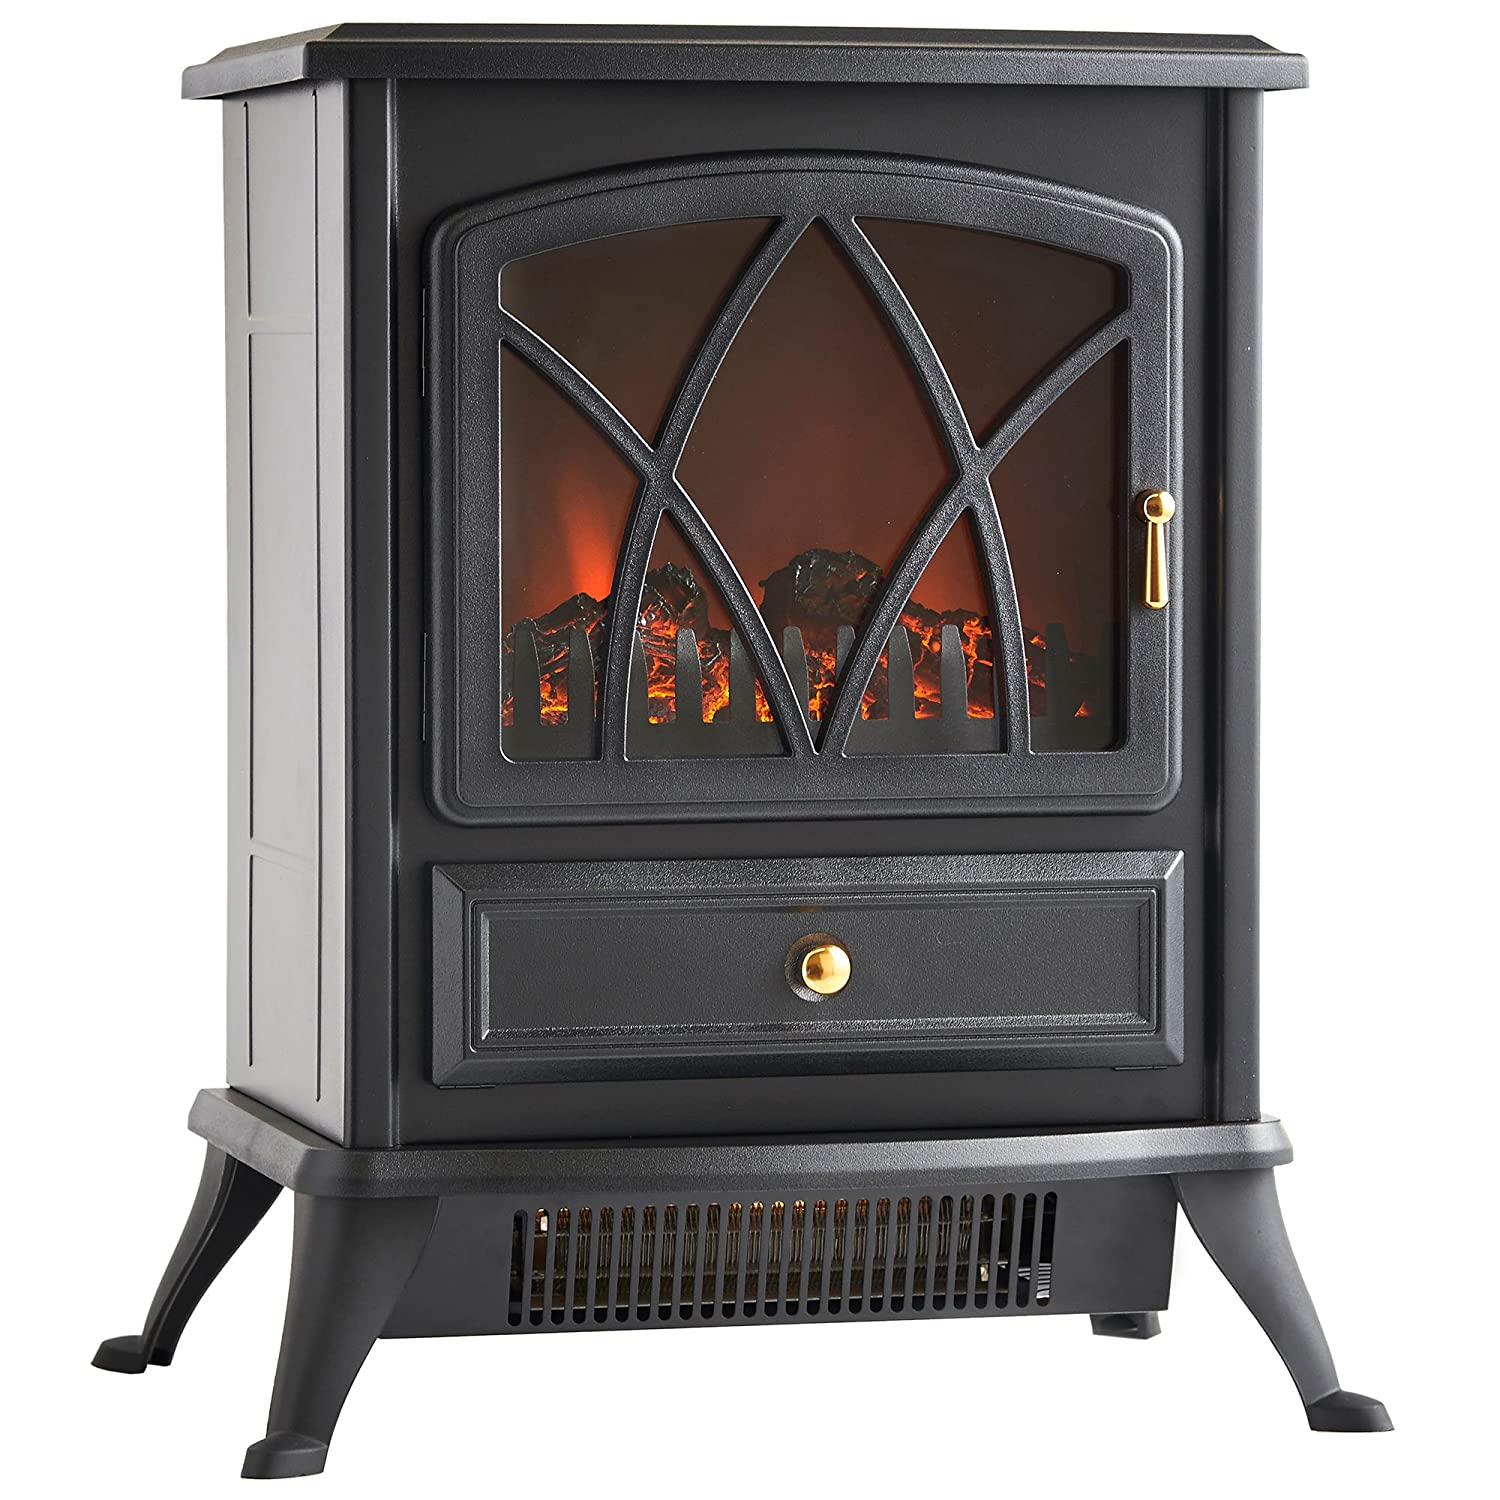 Amazon.com: VonHaus Free Standing Electric Stove Heater Portable Home Fireplace with Log Burning Flame Effect Adjustable 1500W (16.8W x 10.8L x 20H inches - Black): Home & Kitchen